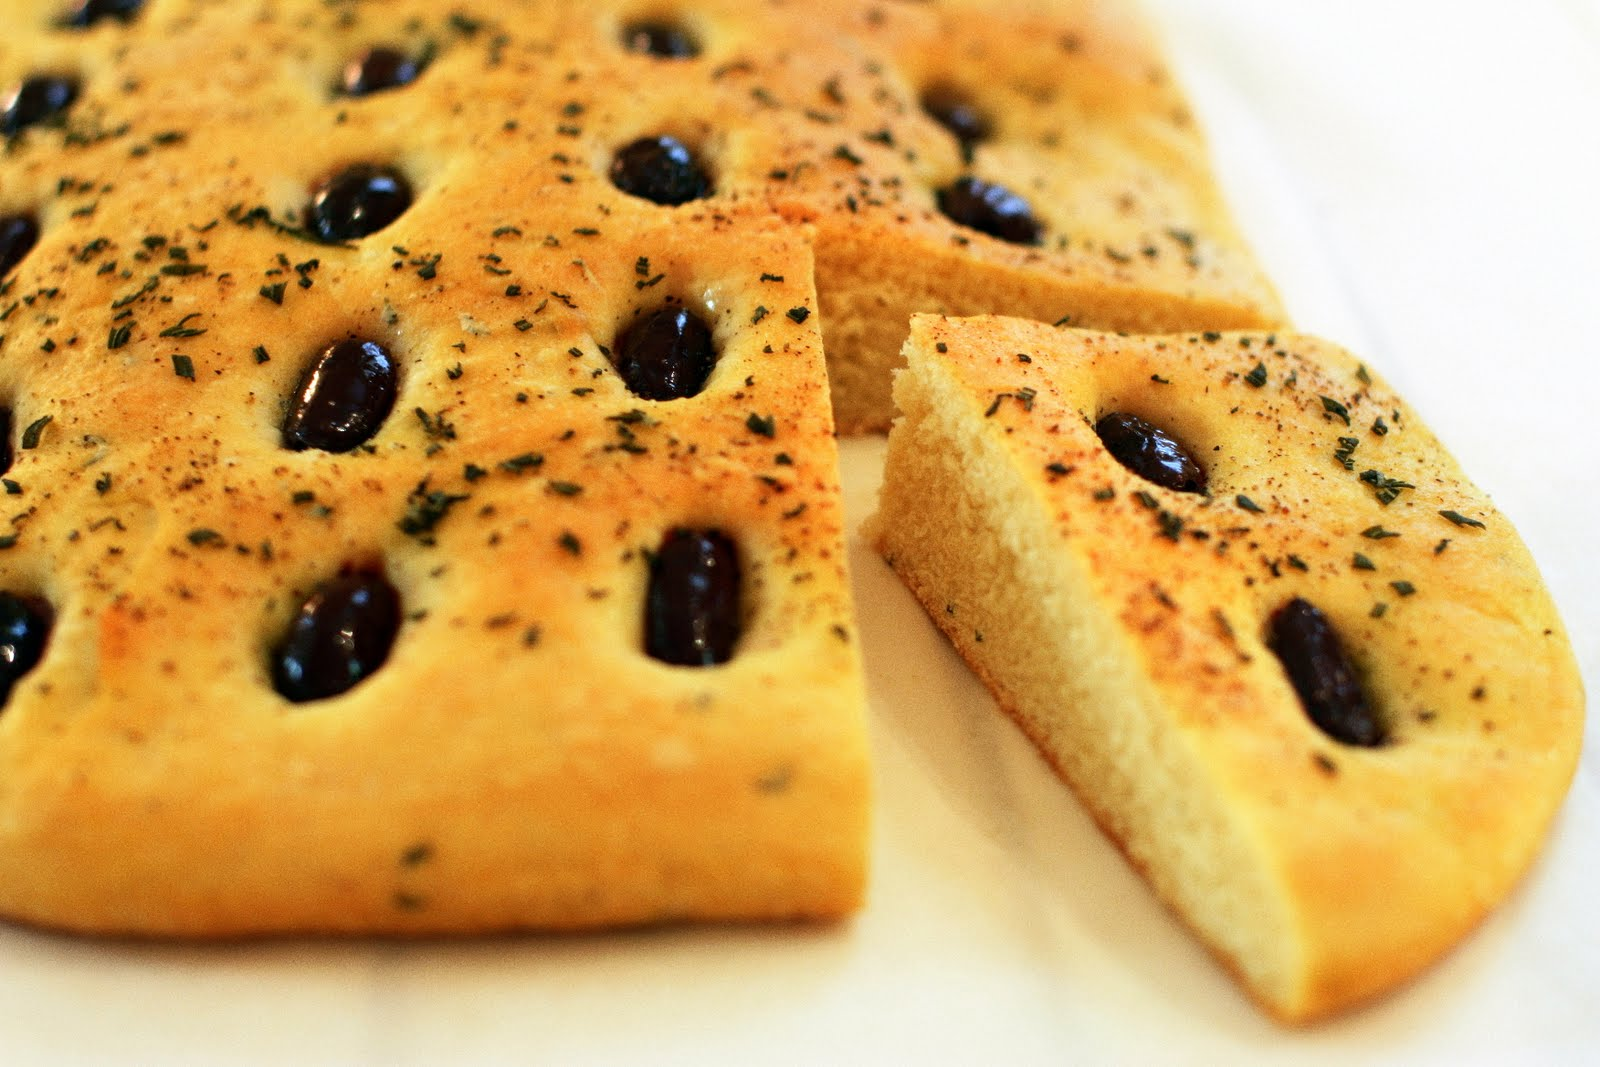 Tish Boyle Sweet Dreams: Rosemary and Black Olive Focaccia